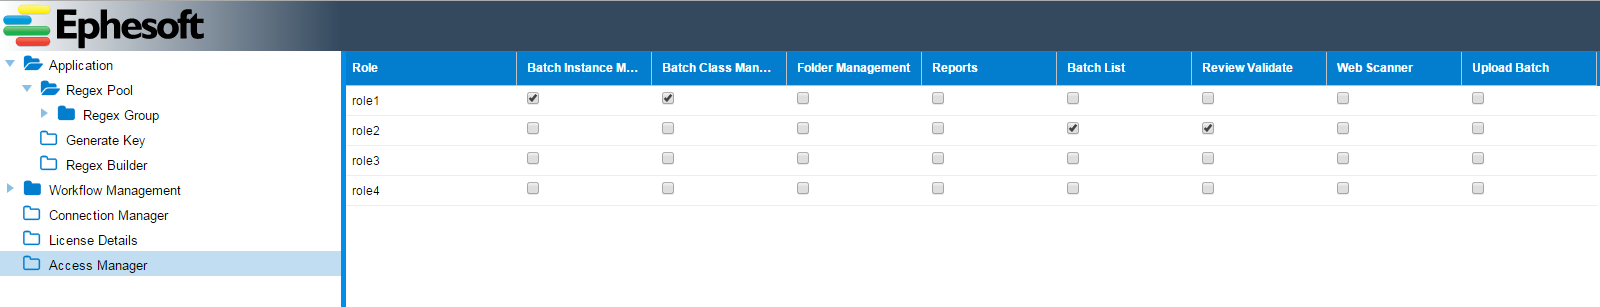 C:\Users\rajanchadha\Desktop\New folder (2)\Images\Access MANAGER\3.png